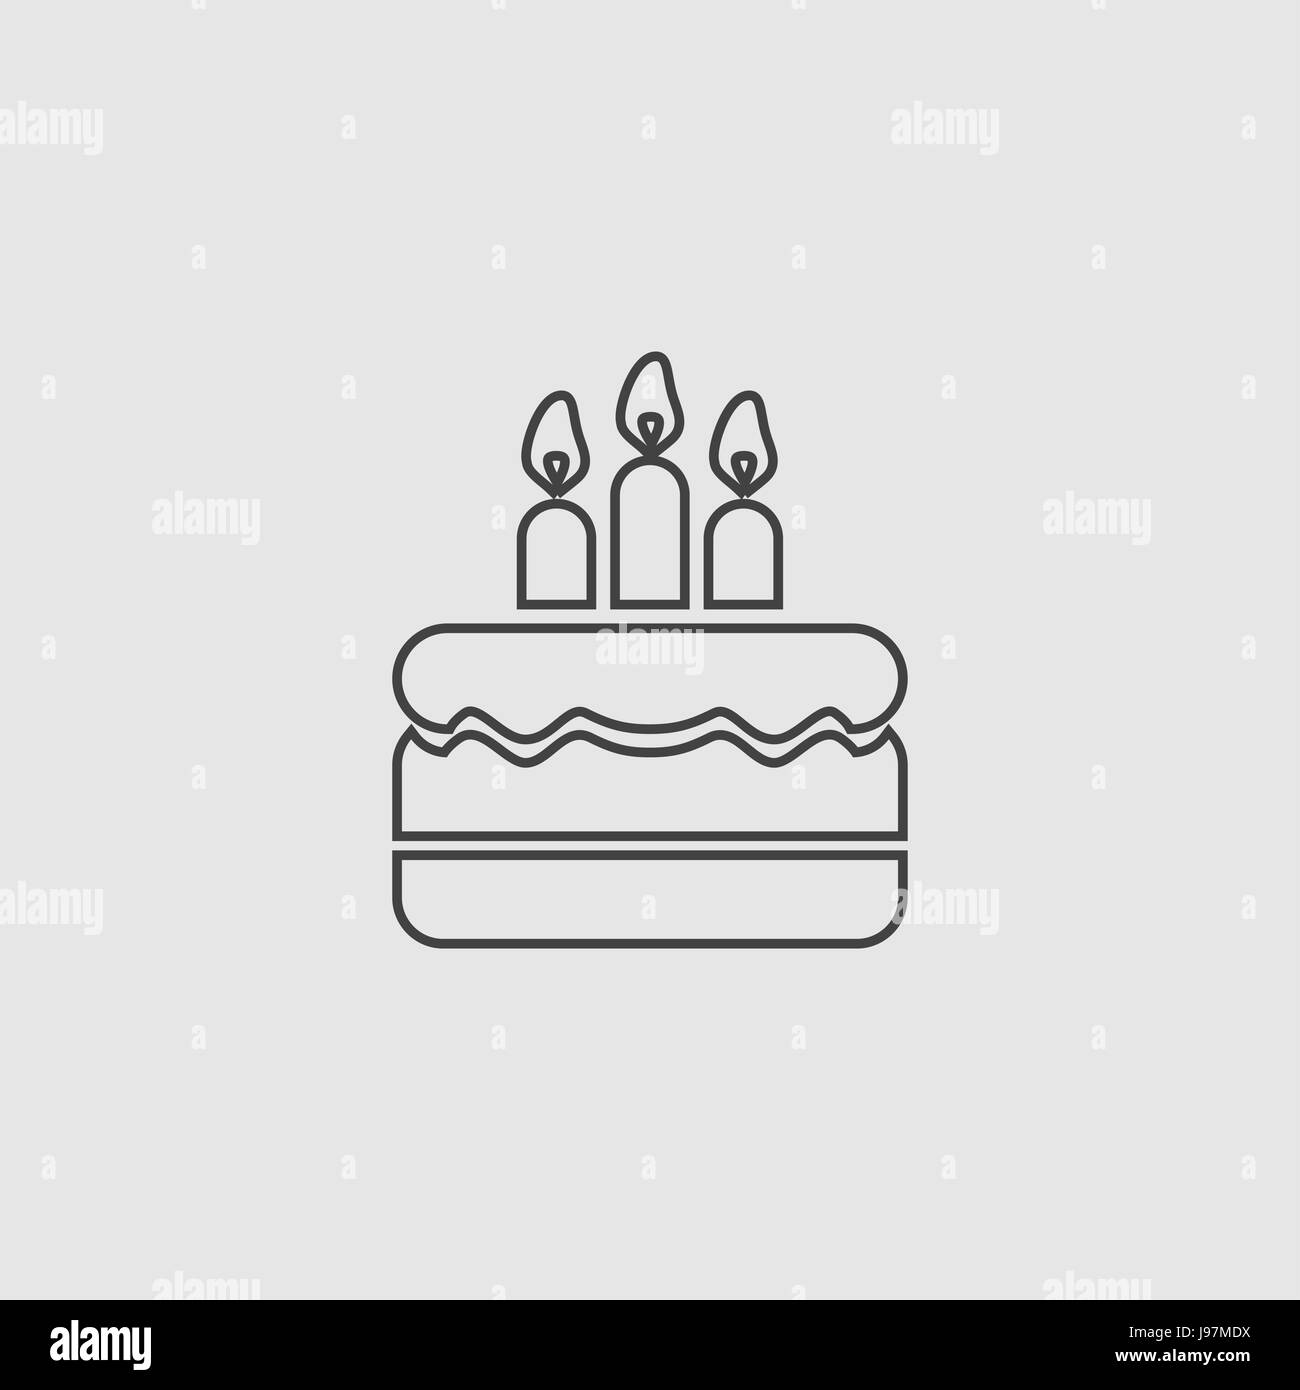 Awesome Birthday Cake Vector Sign Flat Illustration Icon Stock Vector Art Funny Birthday Cards Online Inifofree Goldxyz